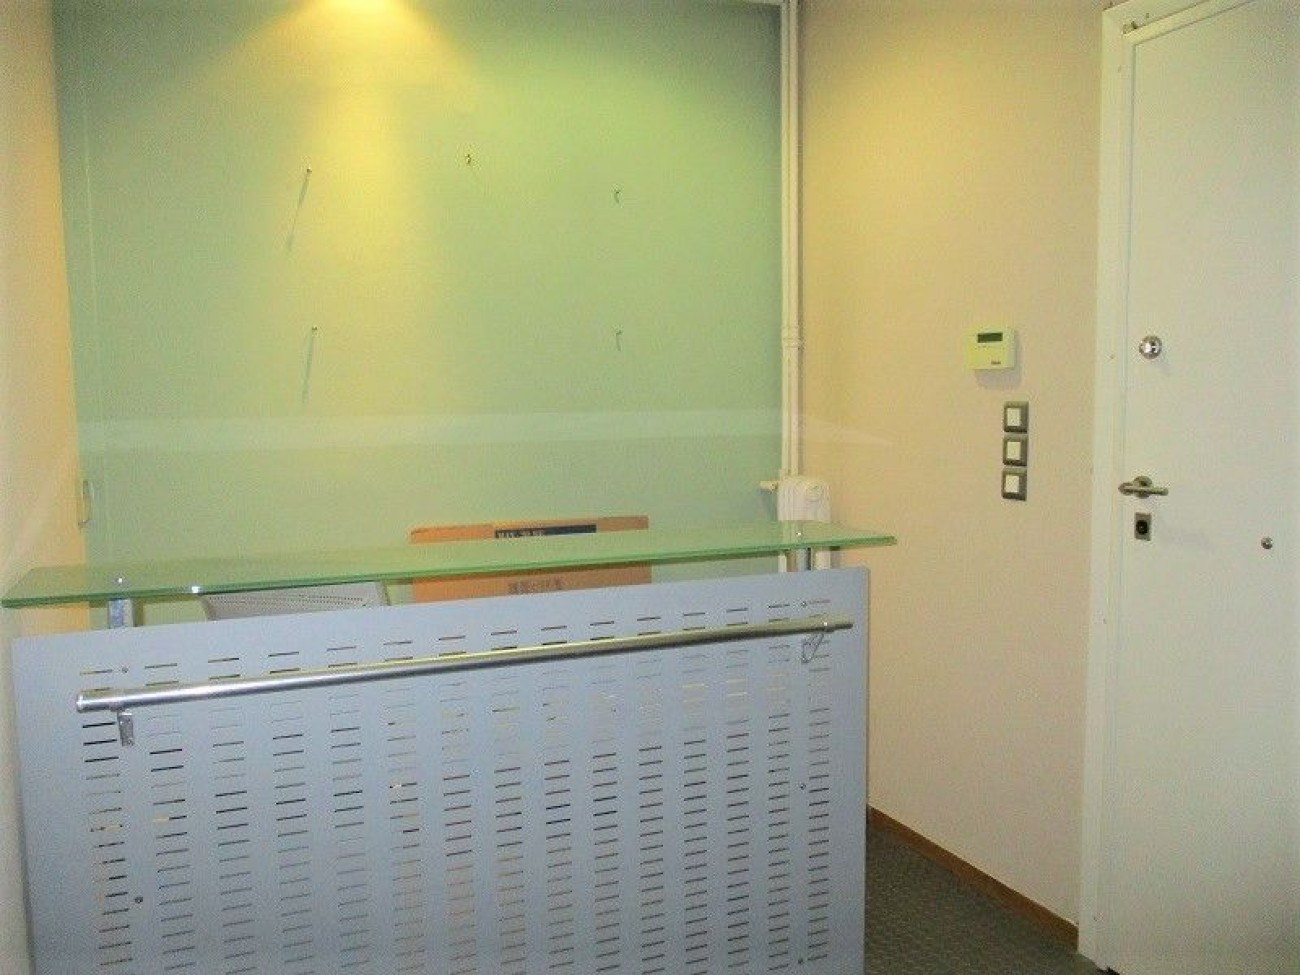 Office for Rent in Kolonaki, Athens City Center, Greece